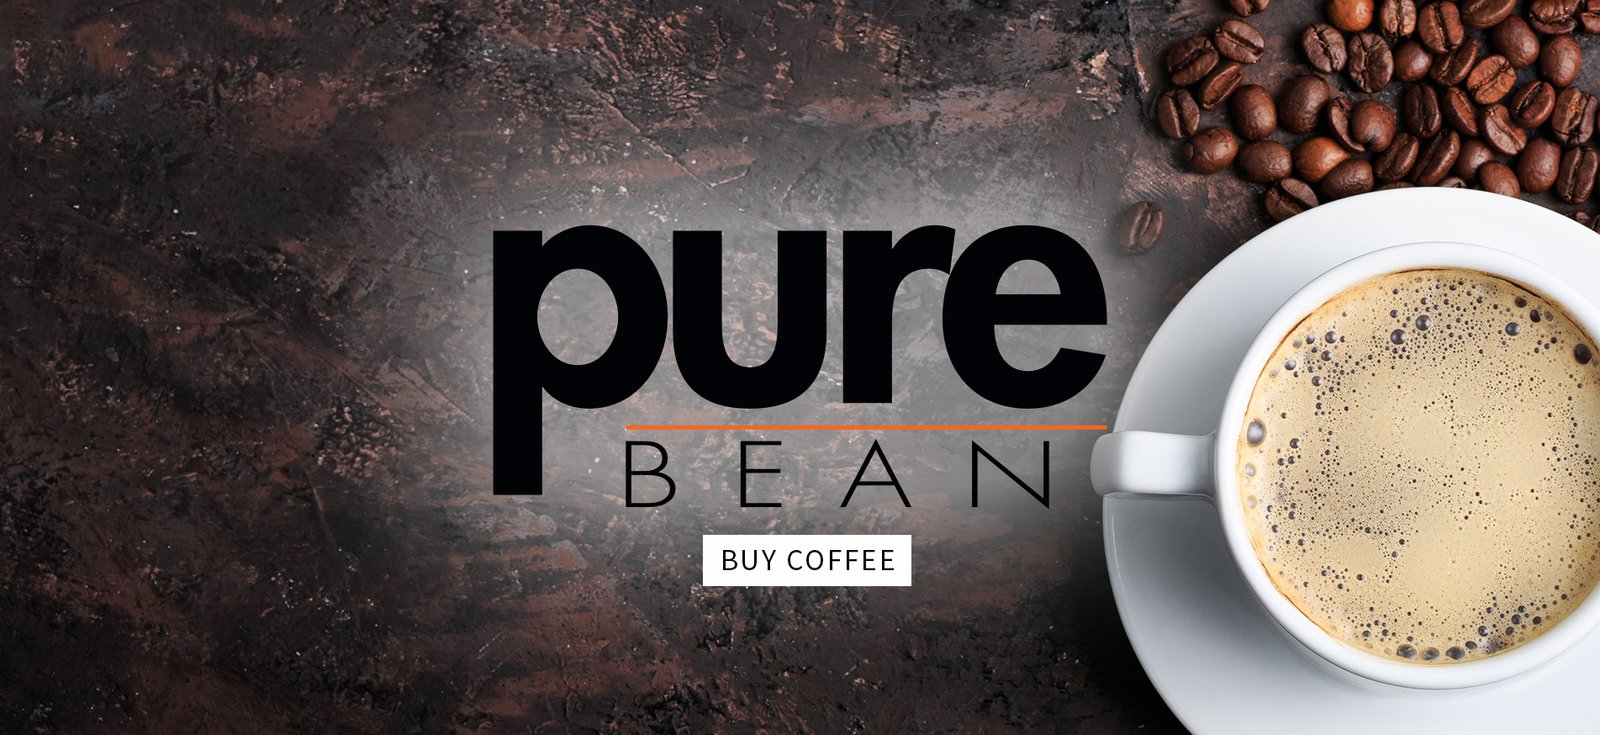 Shop Our Coffees